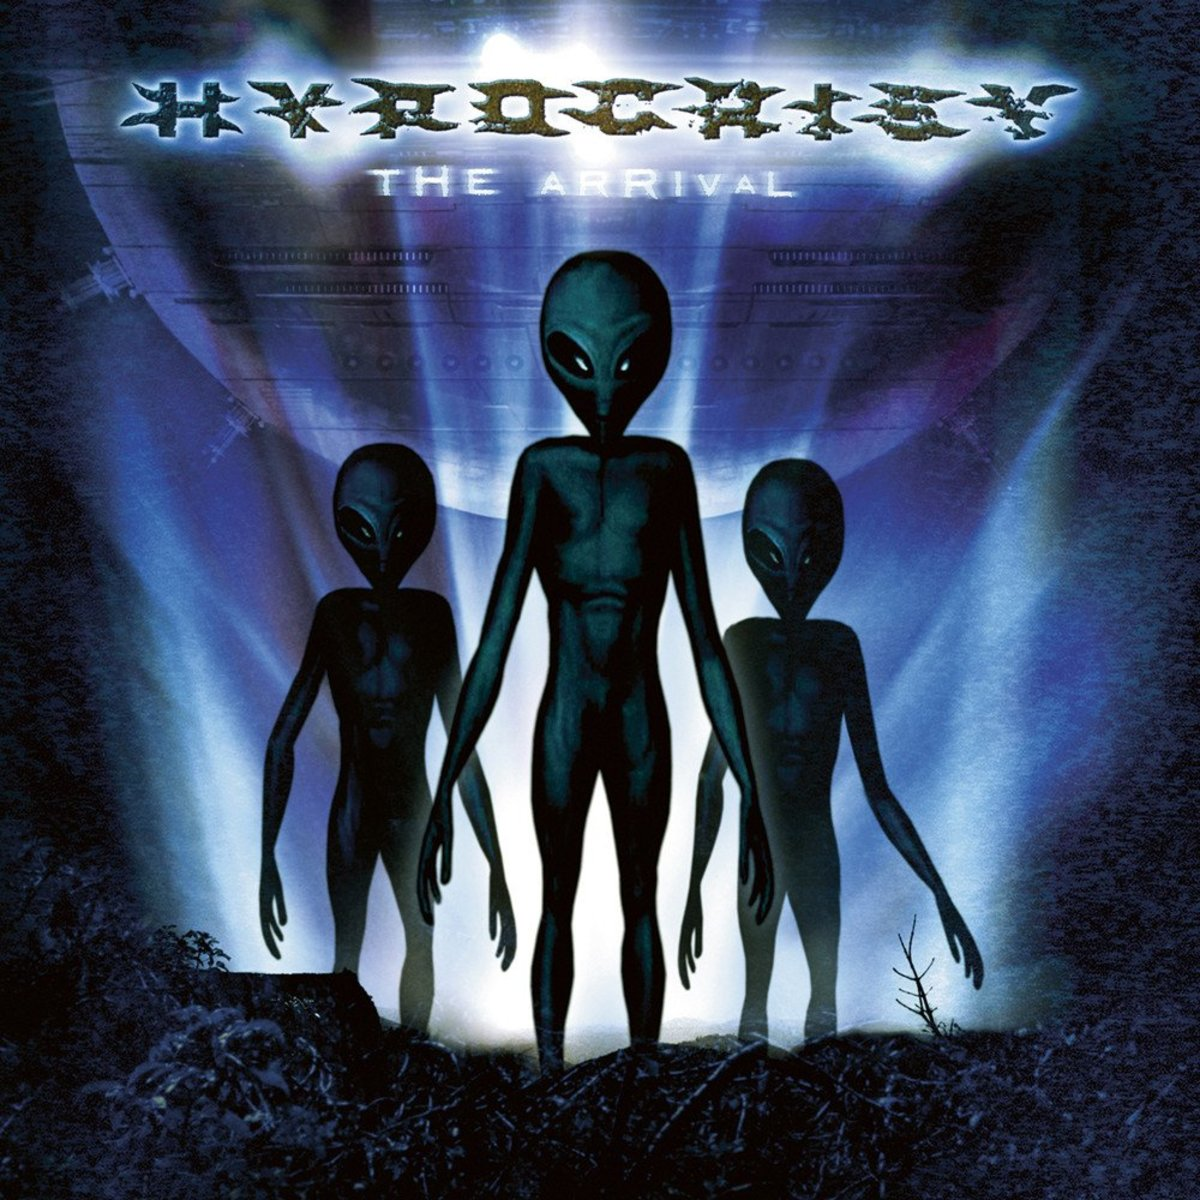 review-of-the-album-the-arrival-by-swedish-melodic-death-metal-band-hypocrisy